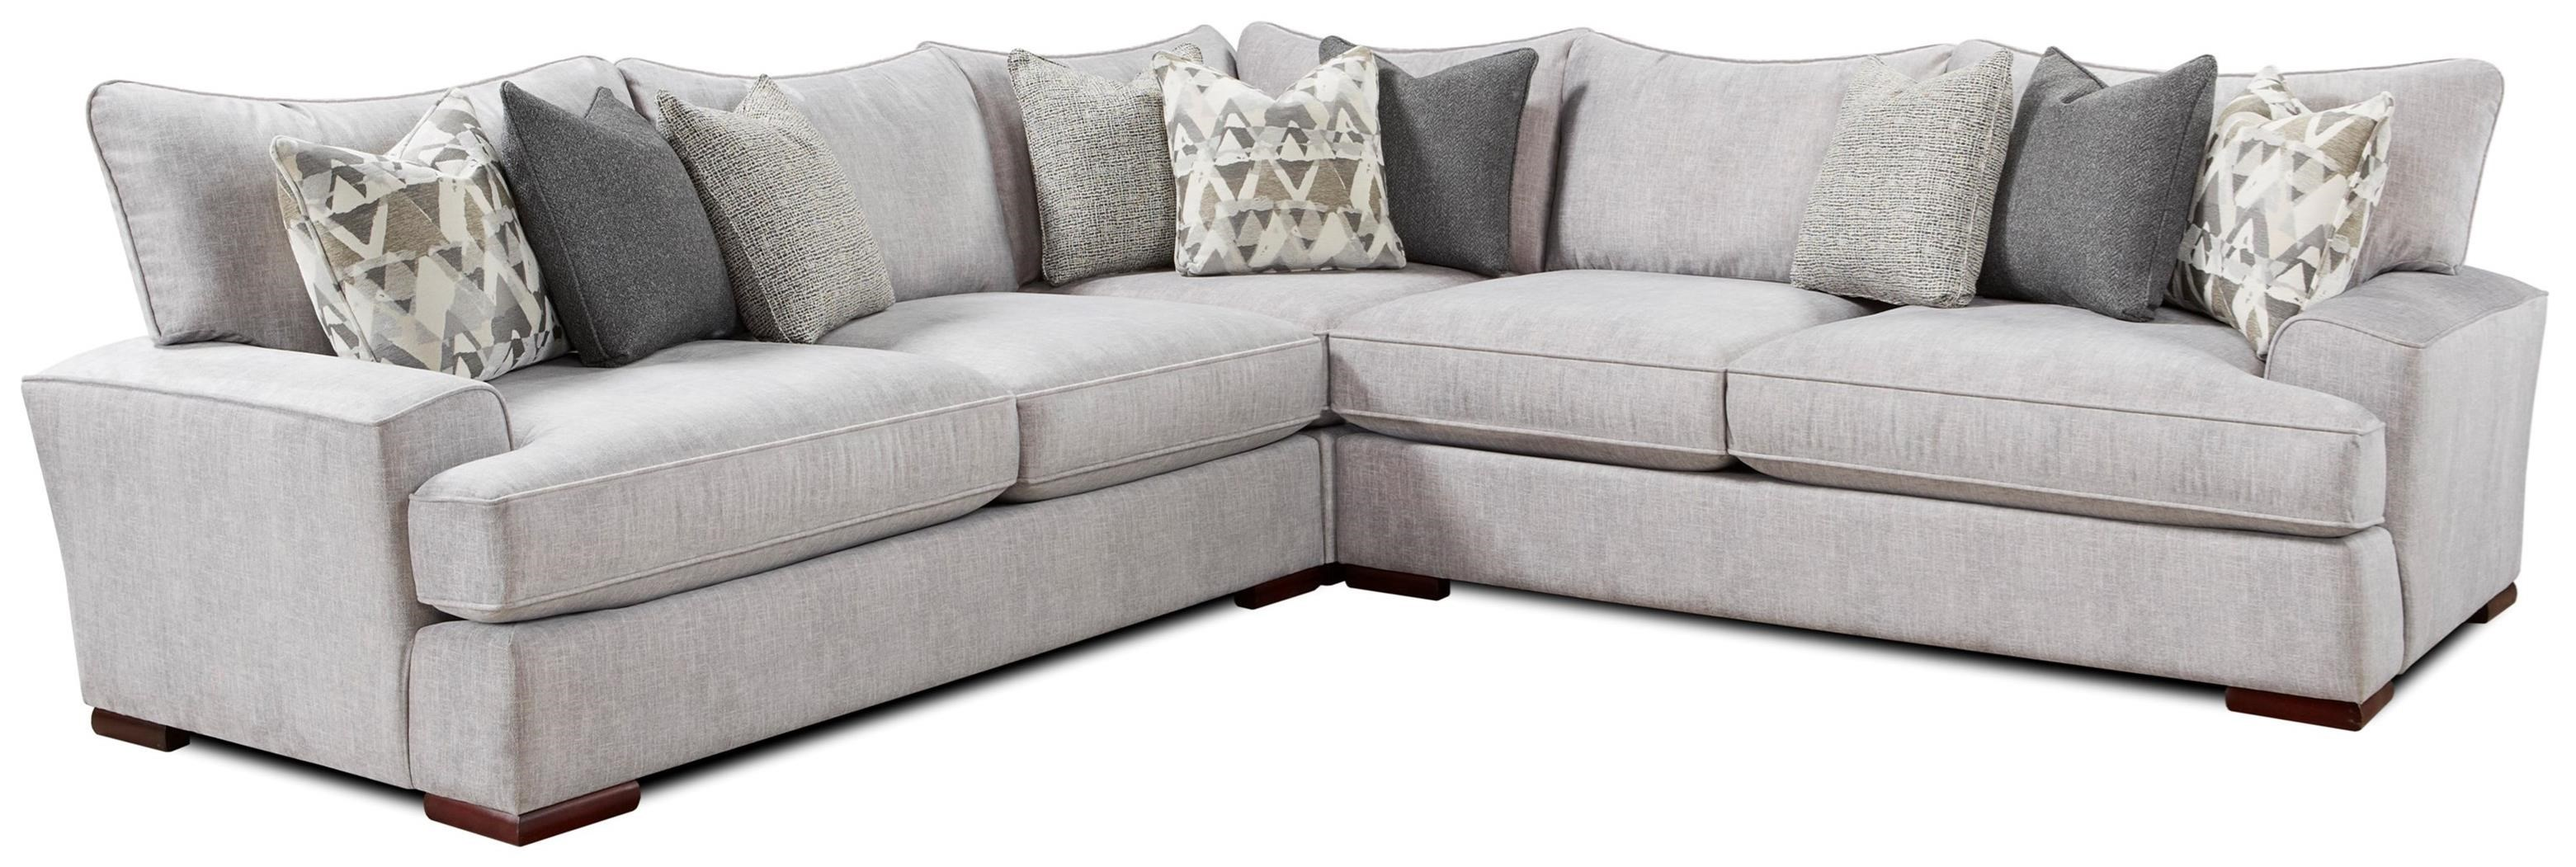 Tyler Sectional by Fusion Furniture at Crowley Furniture & Mattress